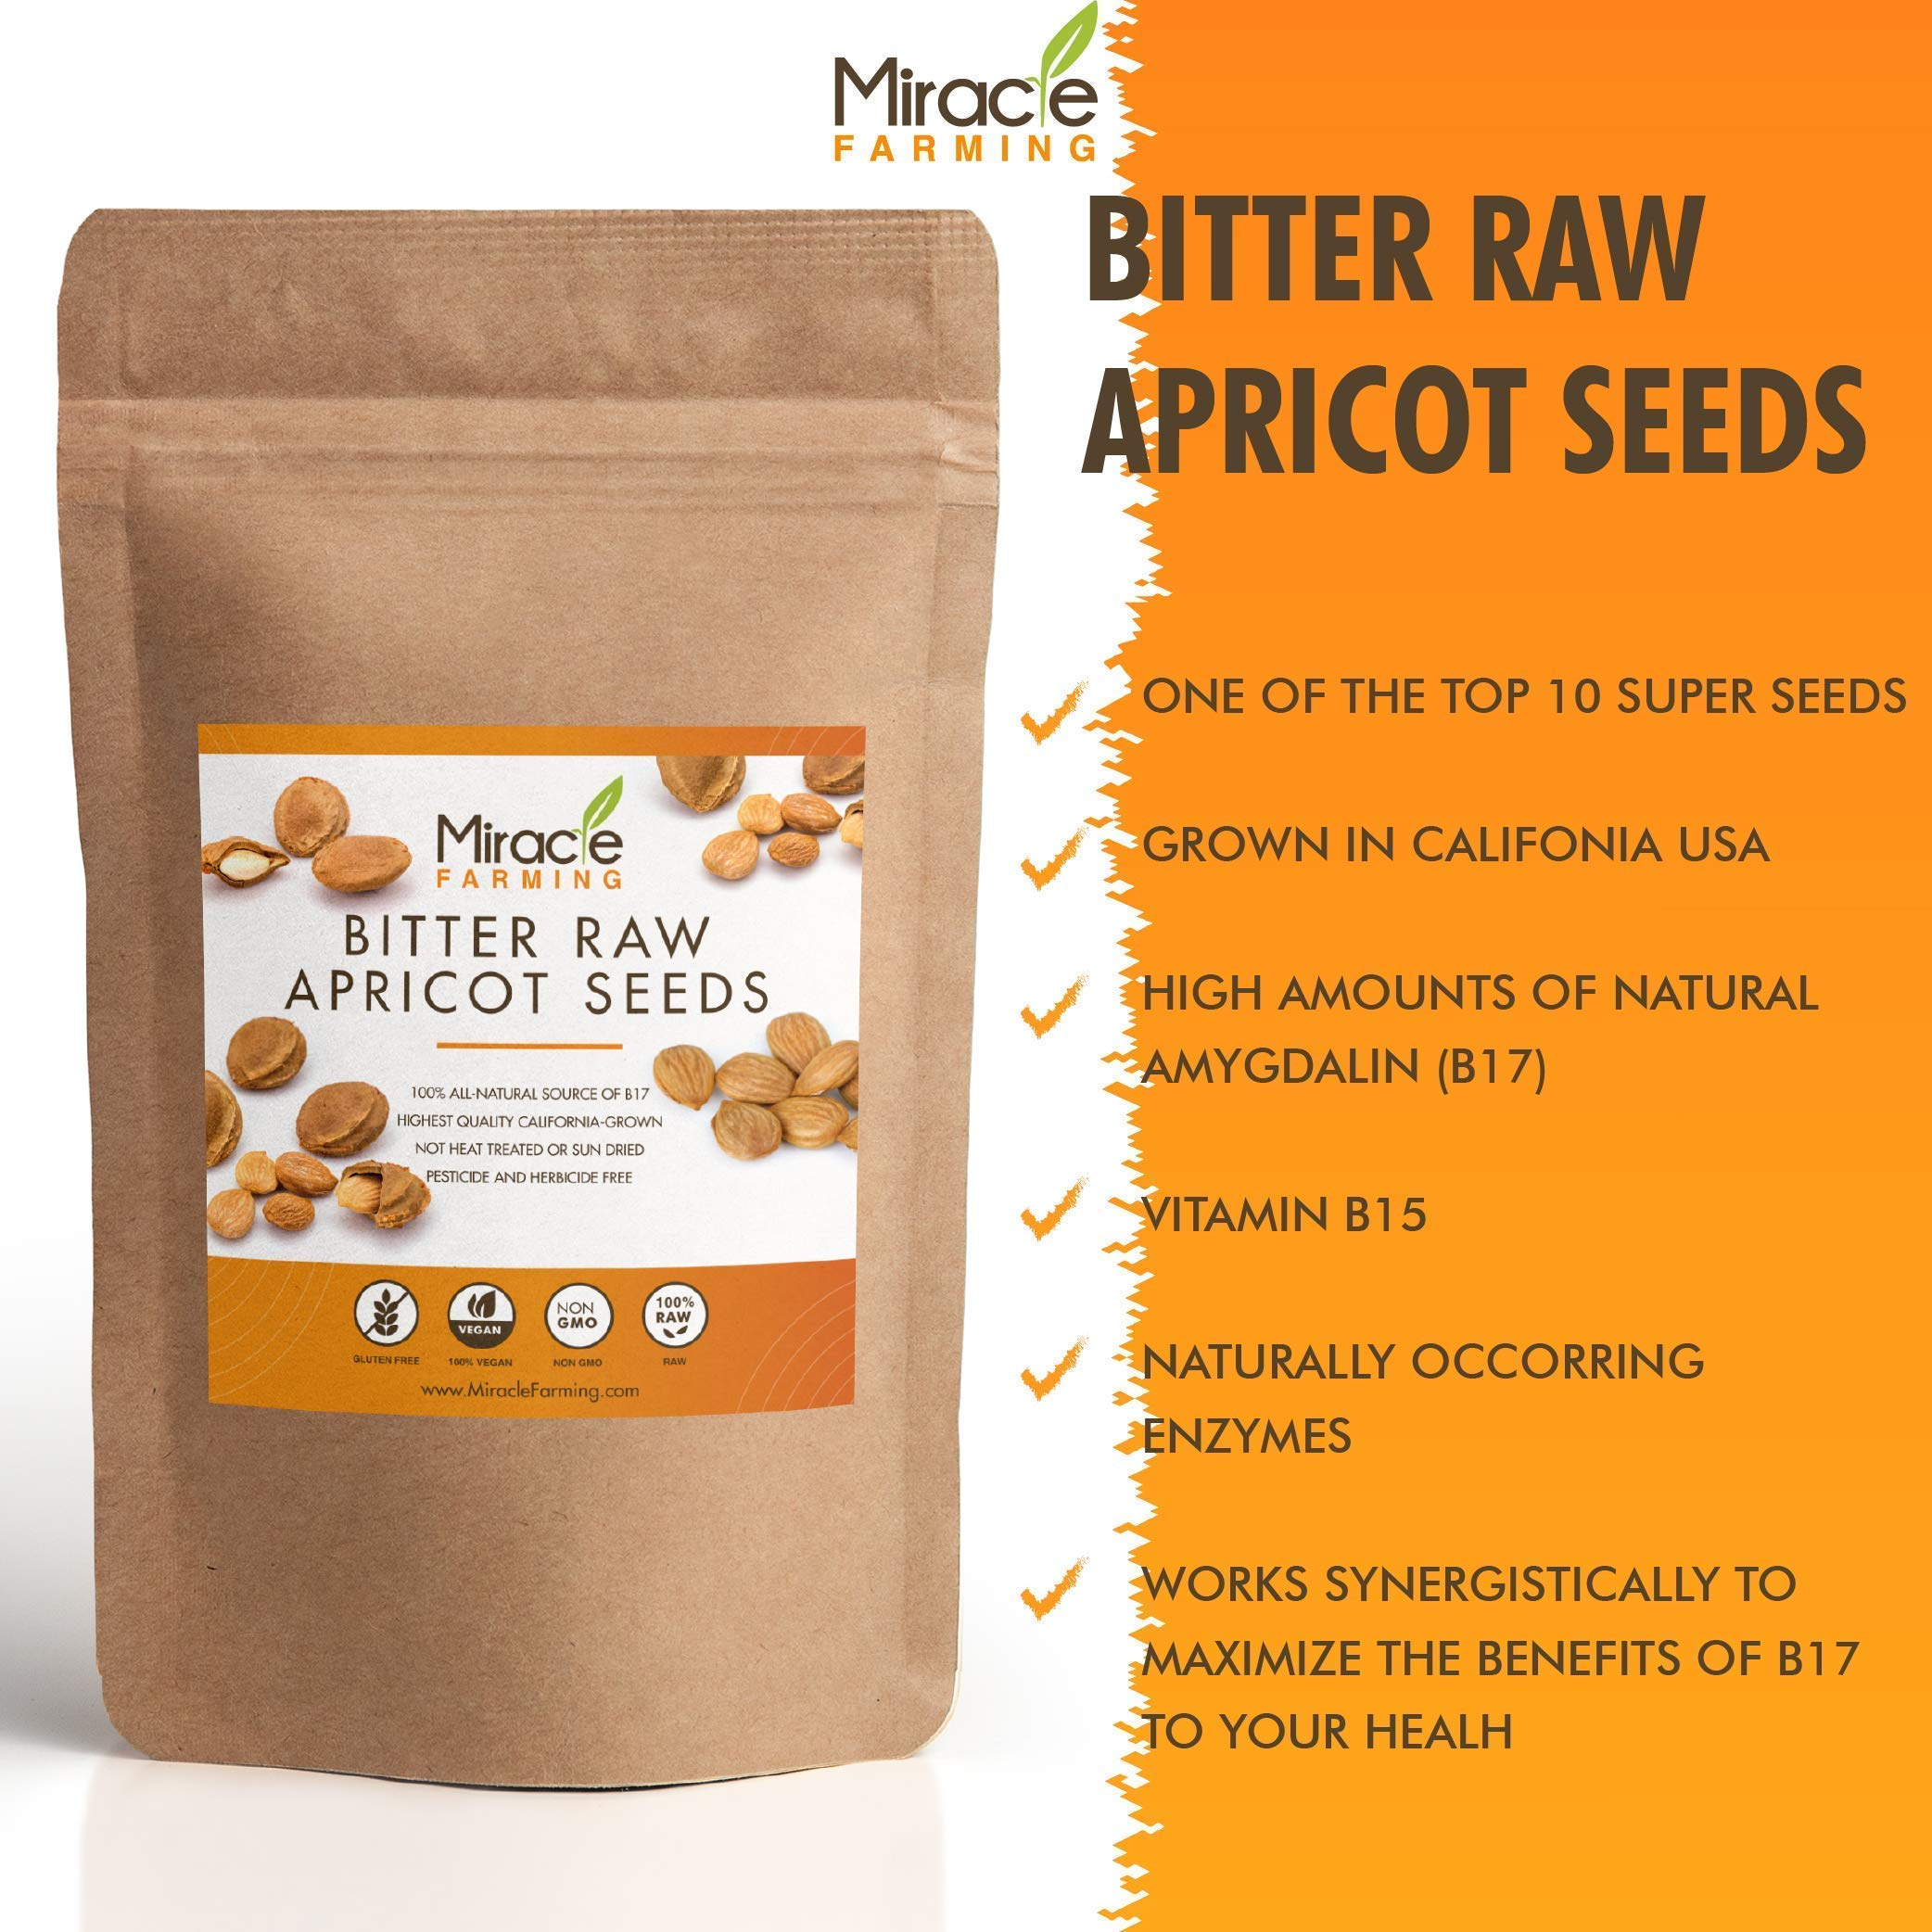 Bitter Apricot Seeds / Kernels, California USA Grown, Pesticide and Herbicide-Free, Non GMO, Vegan, Raw & Large, The Best Natural Source of Vitamin B17, In an Easy Resealable Pouch by Miracle Farming (Image #1)